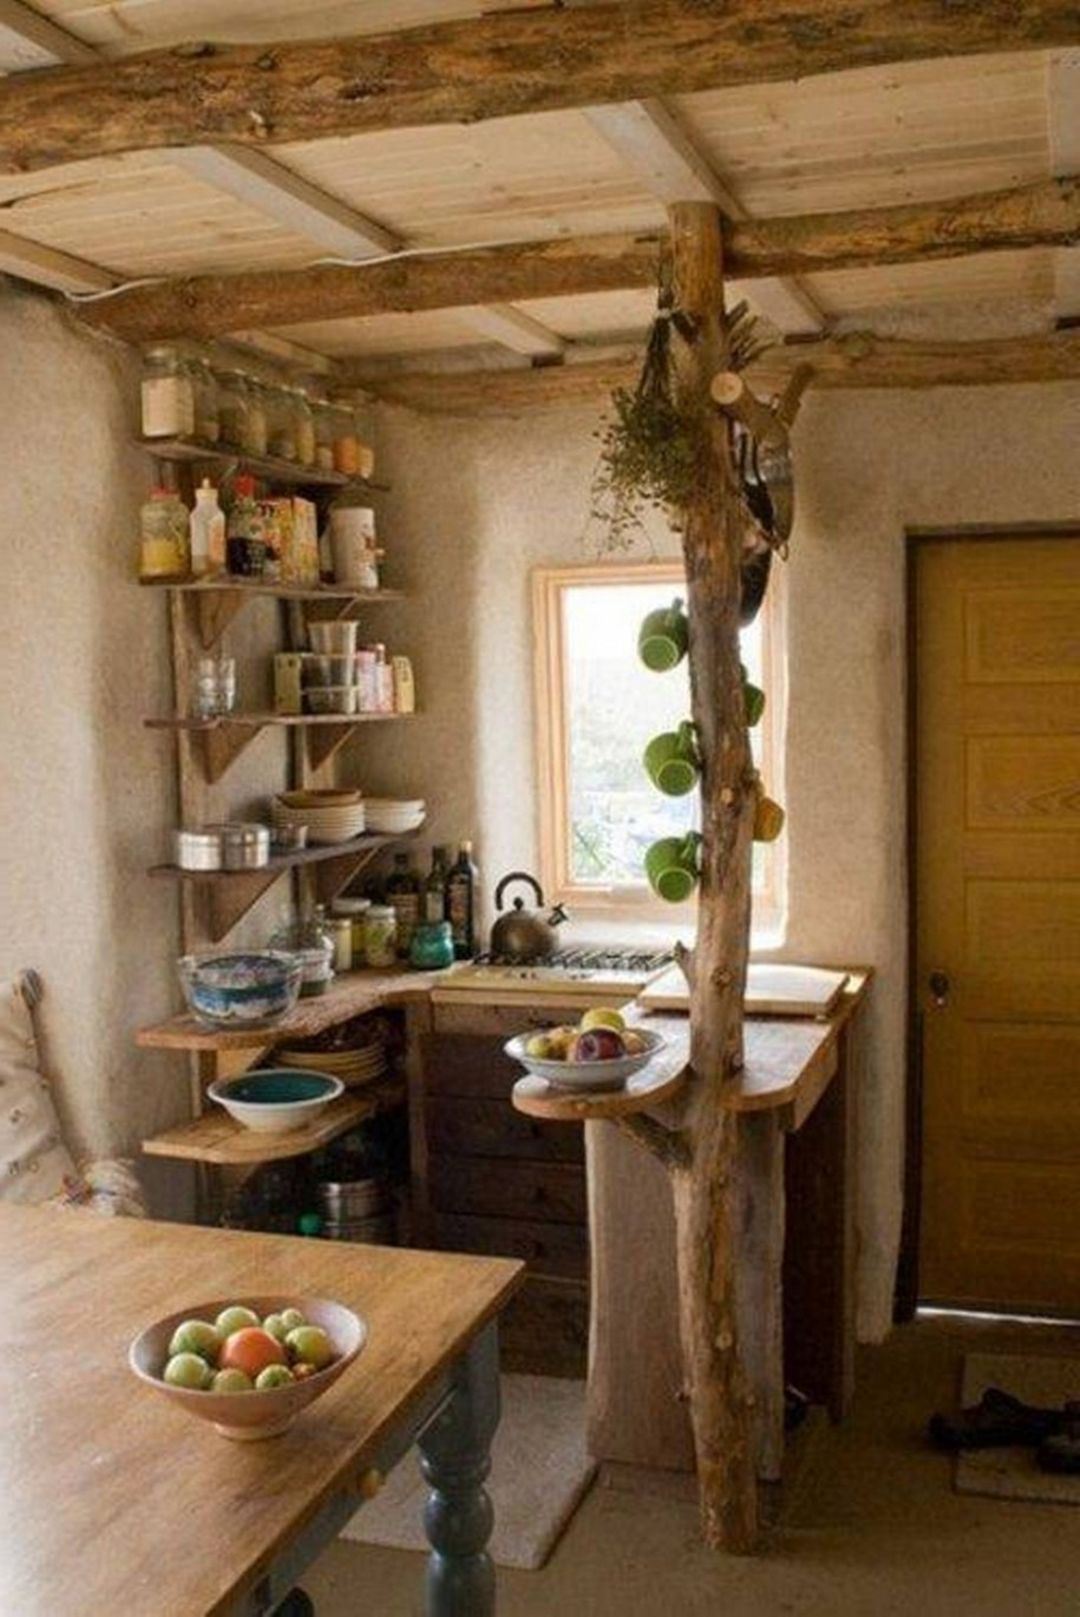 Try These DIY Rustic House Ideas Projects ...n wall grilles as a grand focal point or to create the illusion of windows in a small kitchen. Rustic lighting refers to light fixtures that are decor...ar trend in kitchen sinks currently. Apron sinks have a high back and a low front that often juts past the front of the cabinetry that surrounds it. #gallery.homestylejournaling.com #rustic-house-ideas #rustic